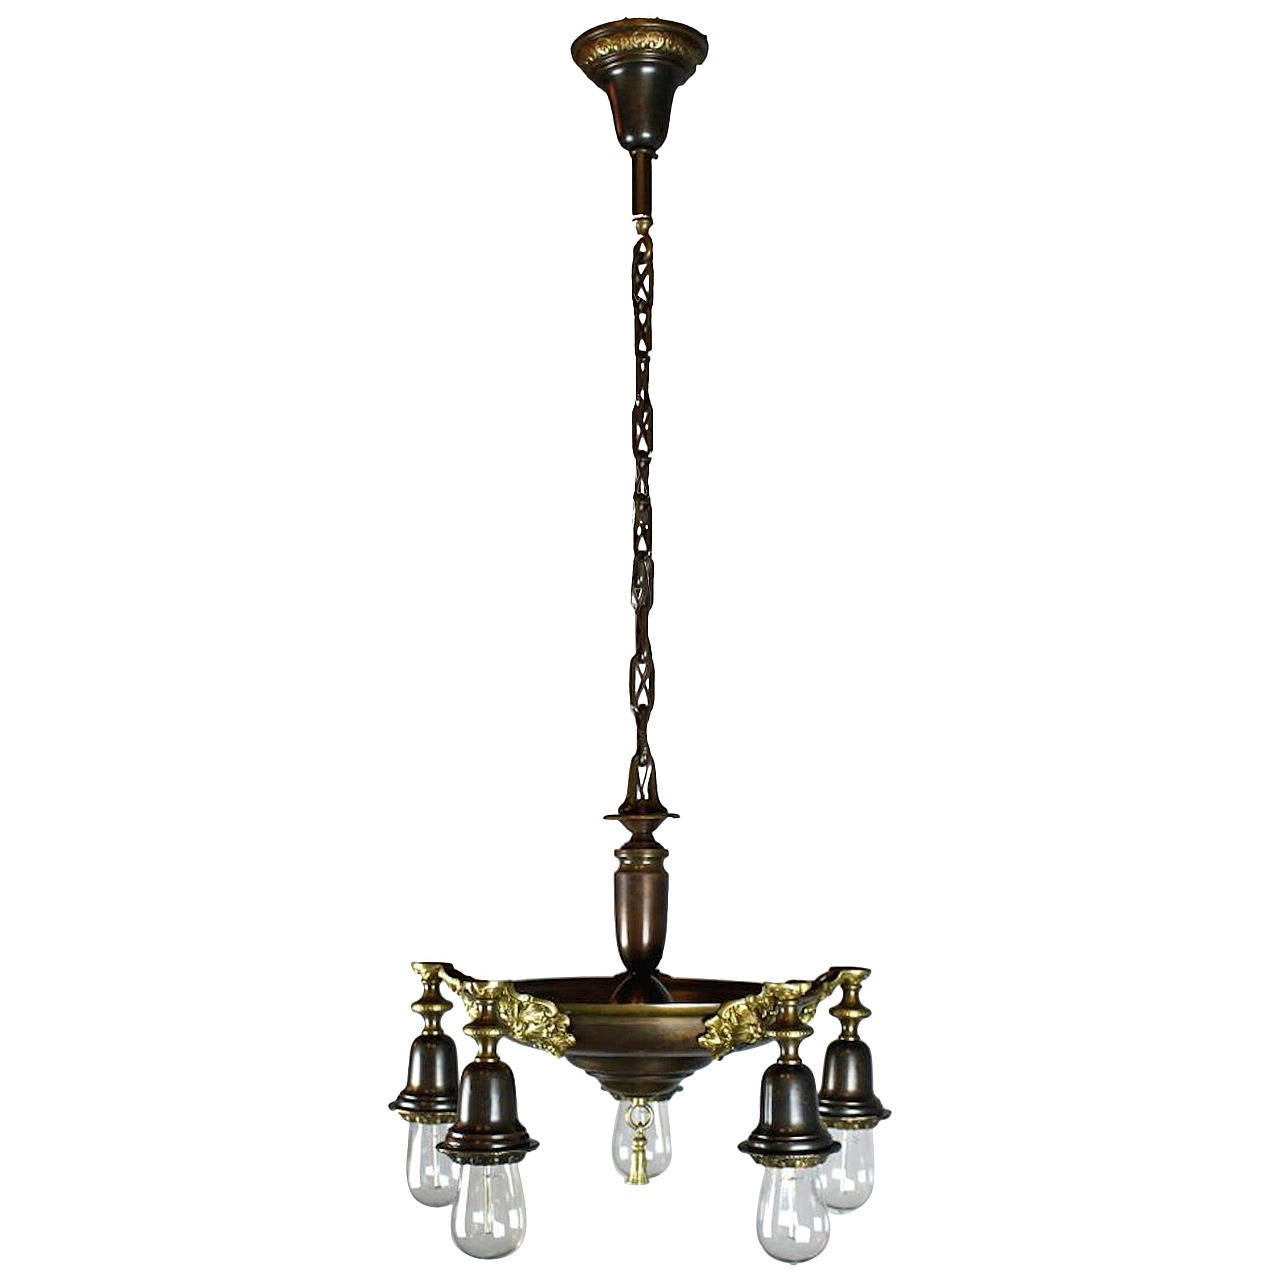 Two Tone Edwardian Five Light Pan Fixture With Bare Bulbs